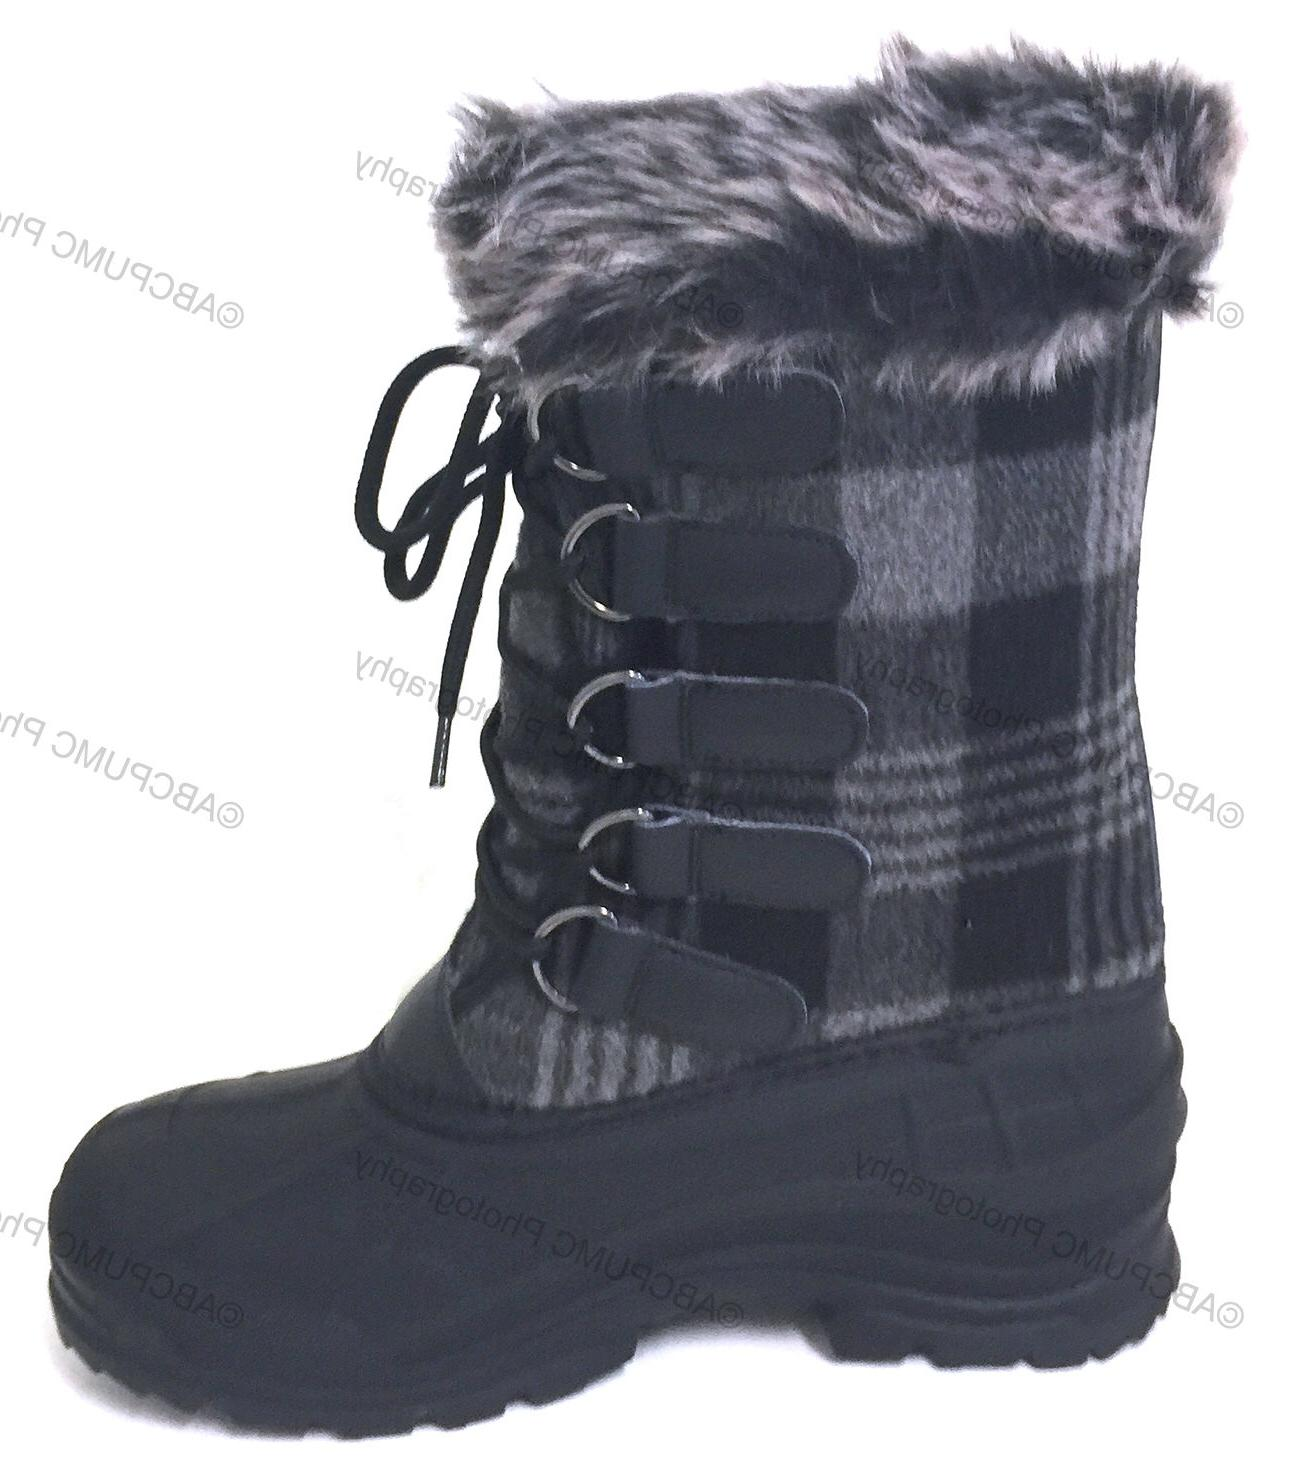 Womens Boots Flannel Plaid Insulated Hiking